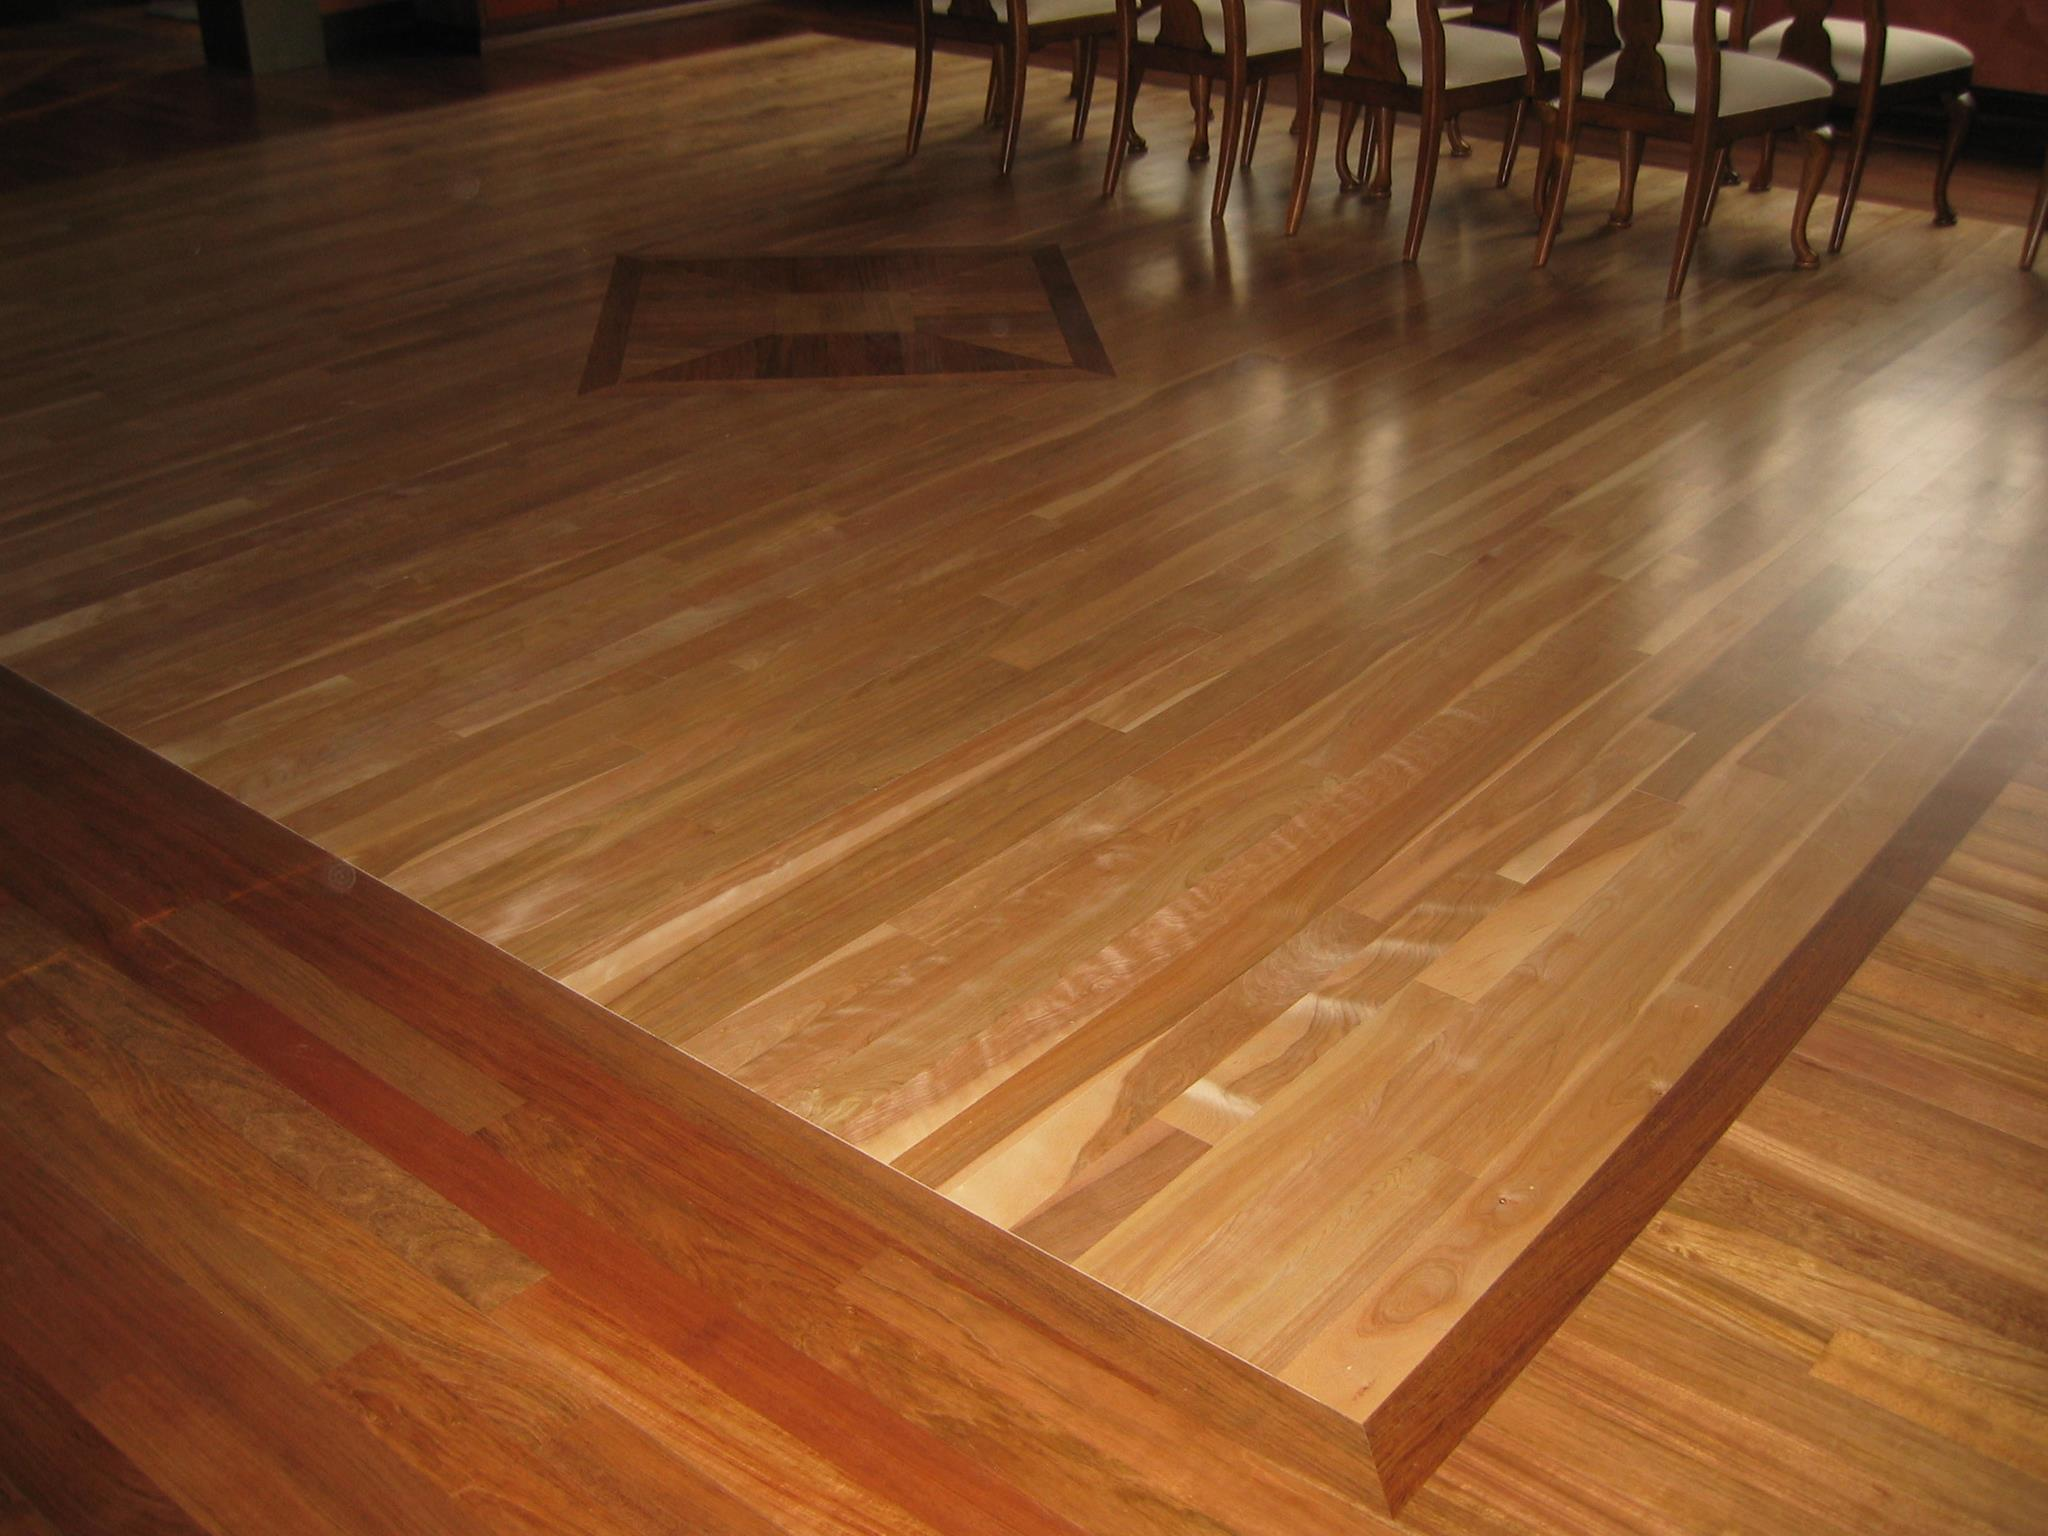 Montana hardwood floor company billings montana for Hardwood flooring company